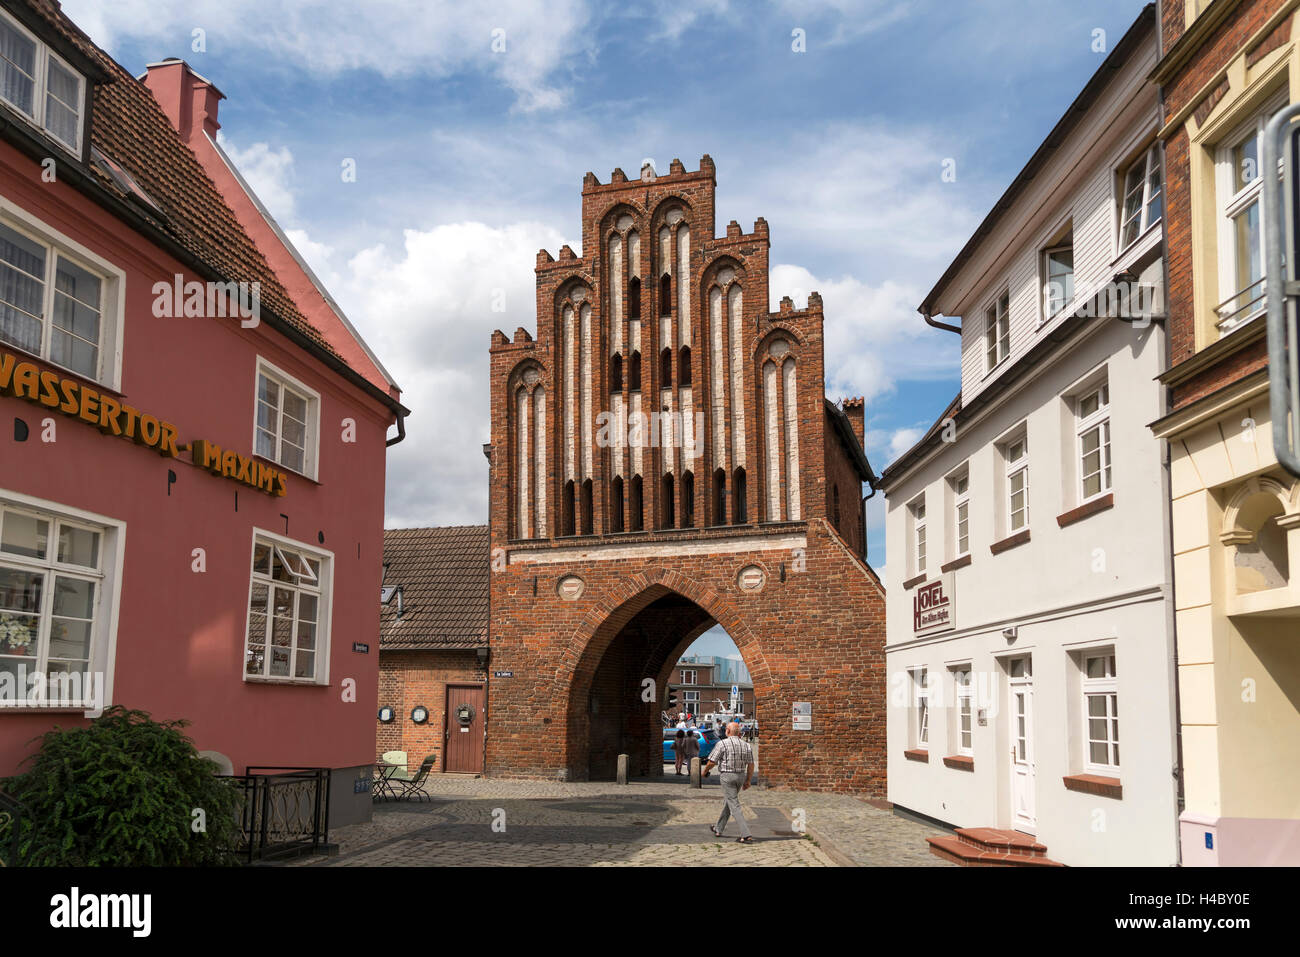 city gate  watergate, Hanseatic City of Wismar, Mecklenburg-Vorpommern, Germany Stock Photo